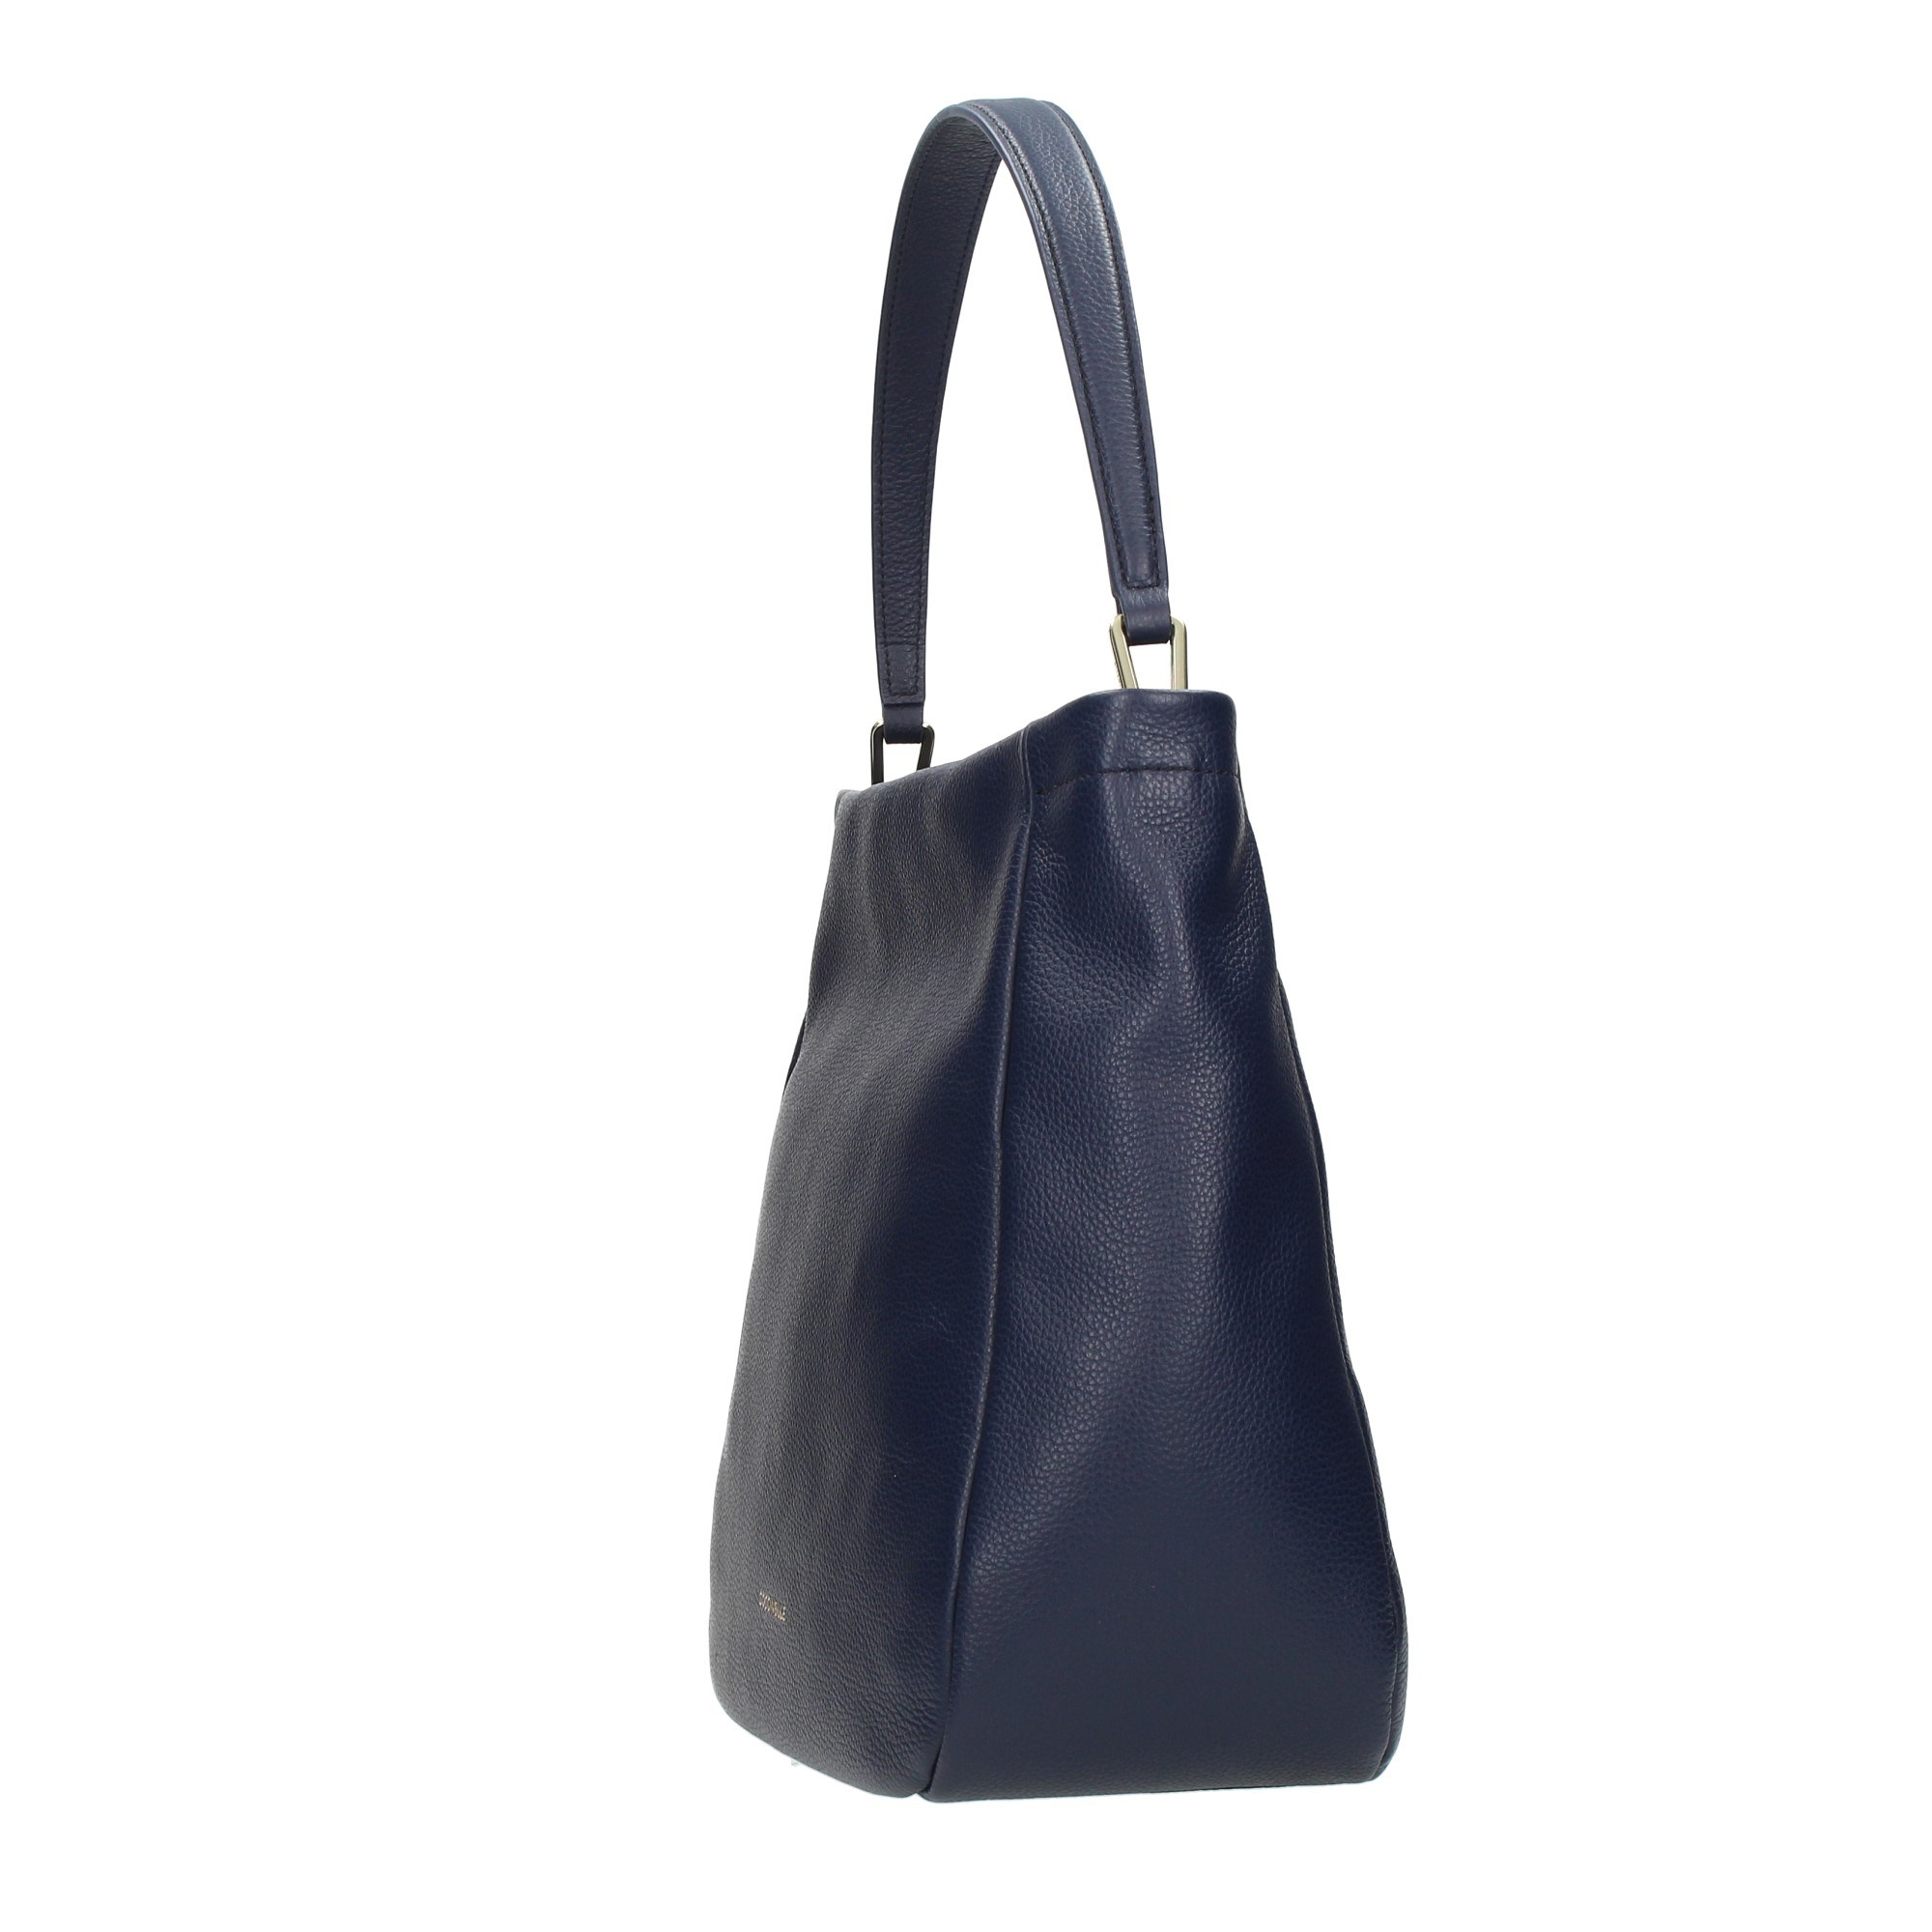 Coccinelle Accessories Women Shoulder Bags Blue GT0 130101